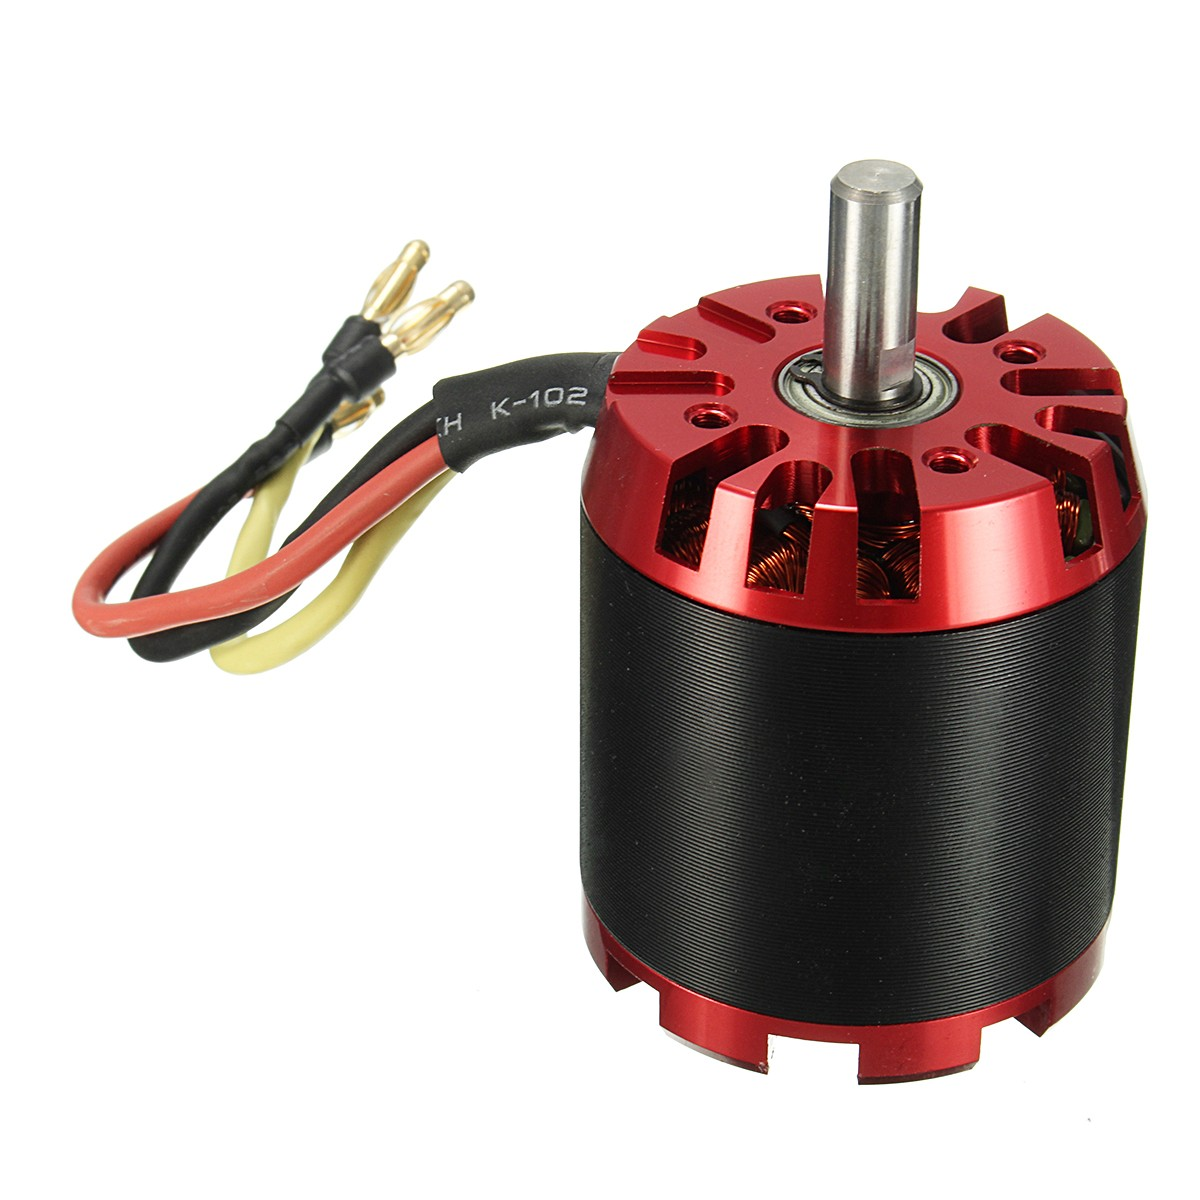 n5065 320kv 1820w outrunner brushless motor for electric. Black Bedroom Furniture Sets. Home Design Ideas